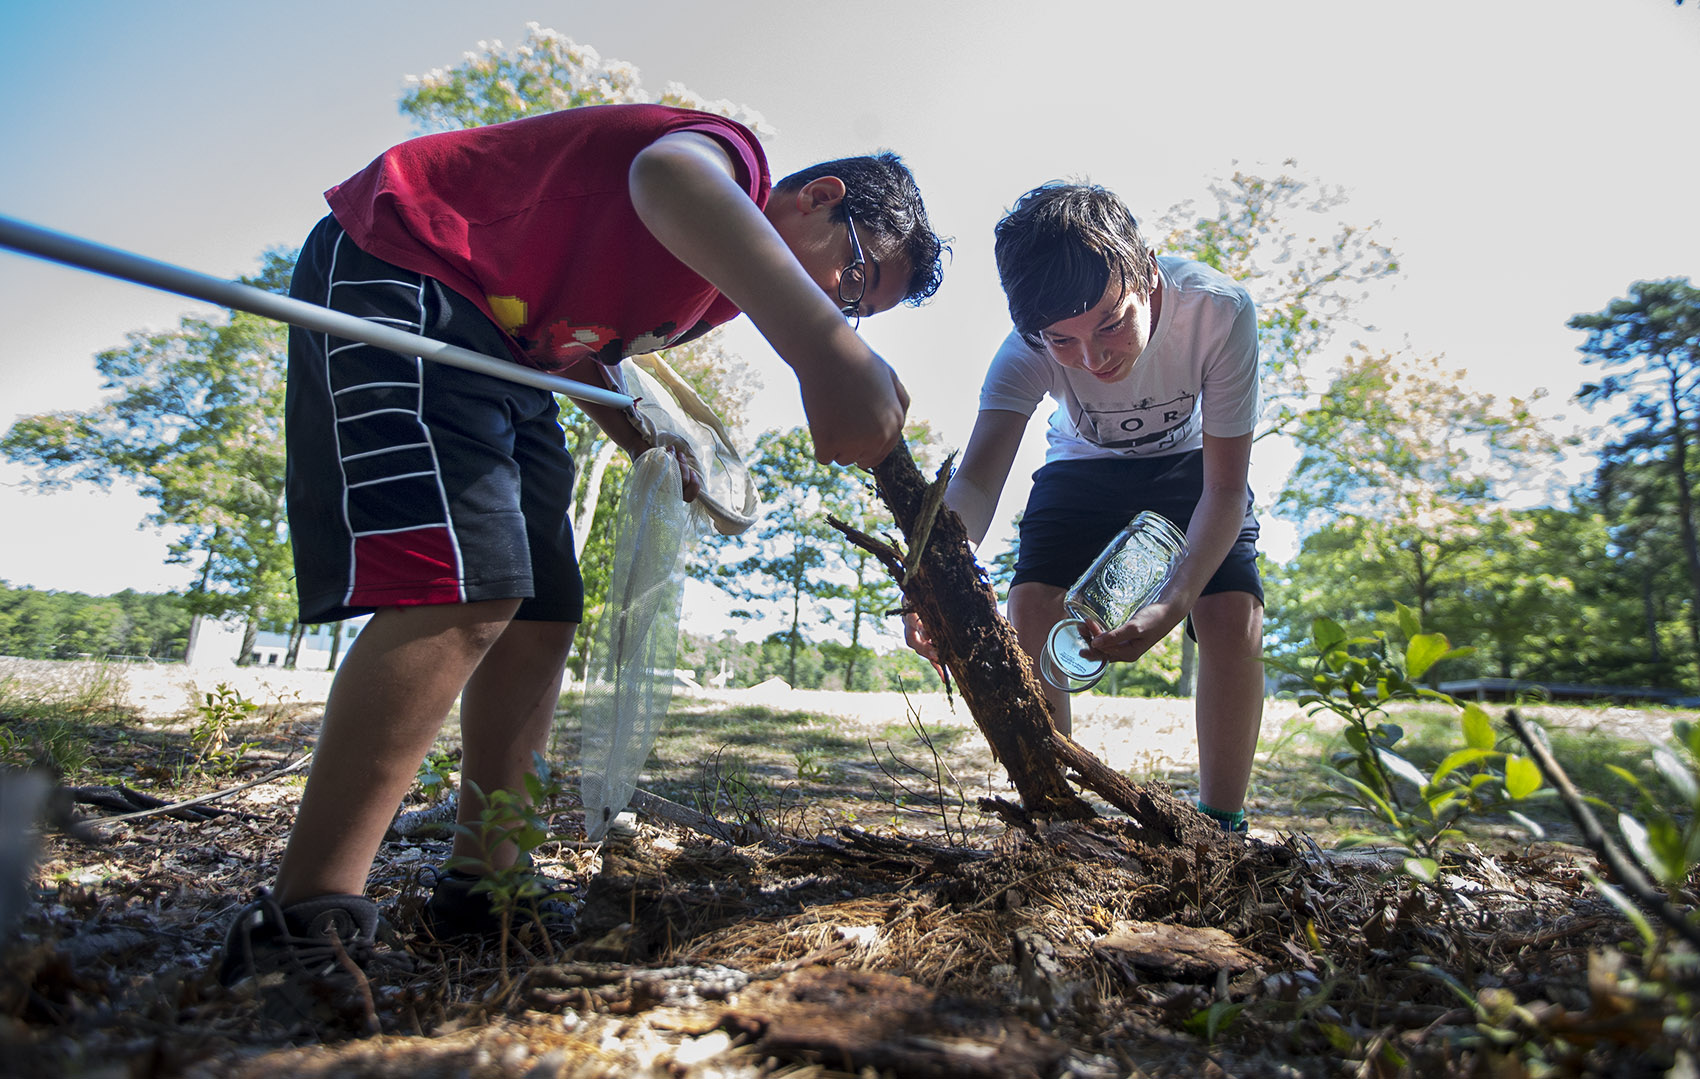 Isaiah Peters, 11, and Angel Peters, 13, lift a branch out of the ground looking for bugs to collect at the Mashpee Wampanoag science camp program. (Jesse Costa/WBUR)